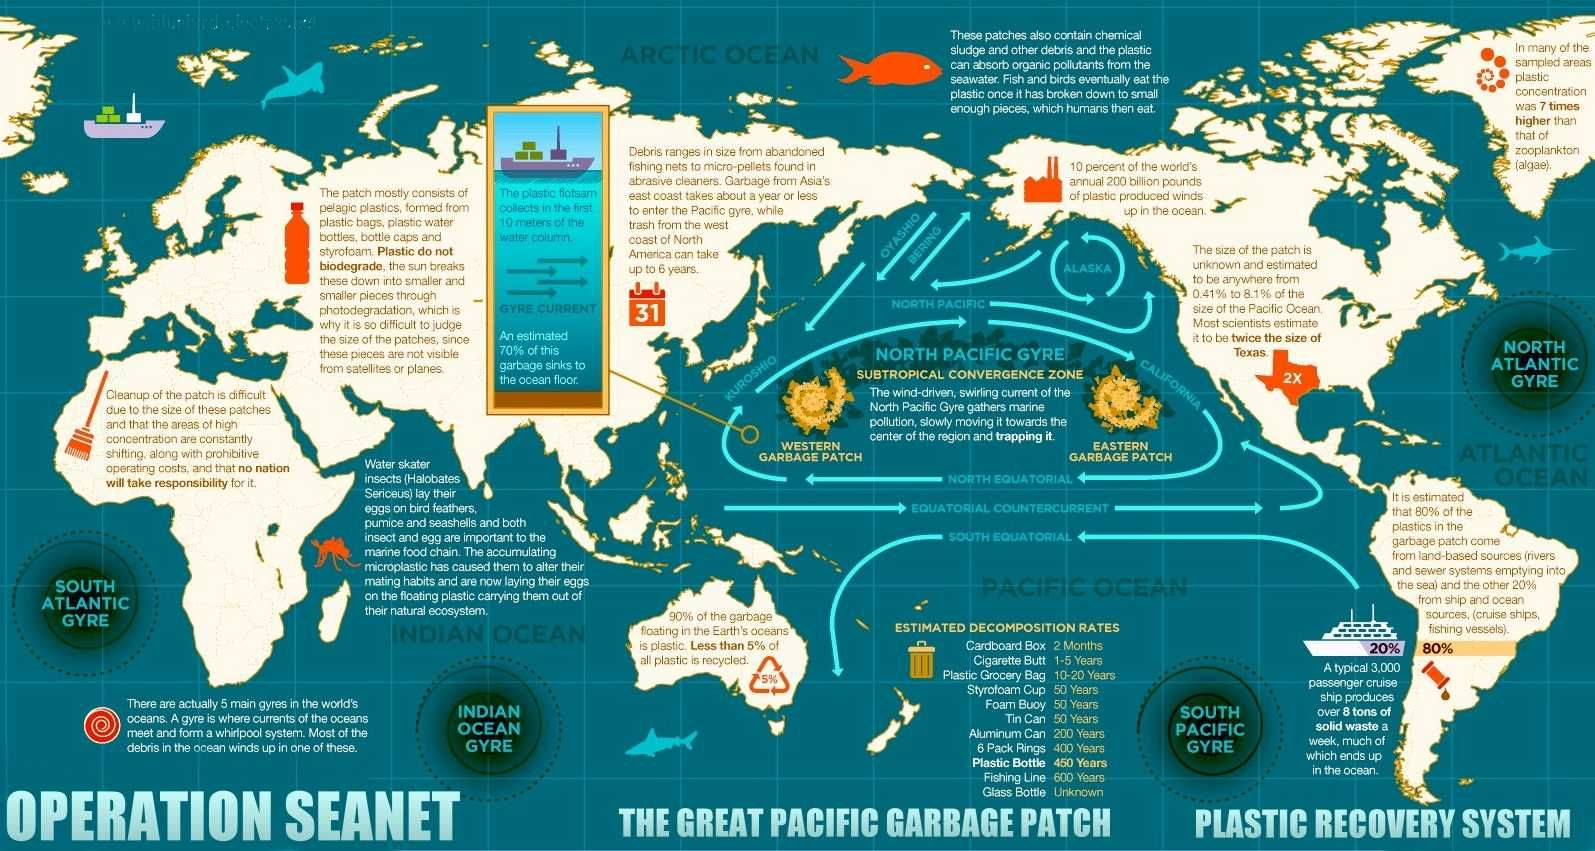 Plastic oceans great pacific garbage patch world mapg 1595851 plastic oceans great pacific garbage patch world map gumiabroncs Choice Image